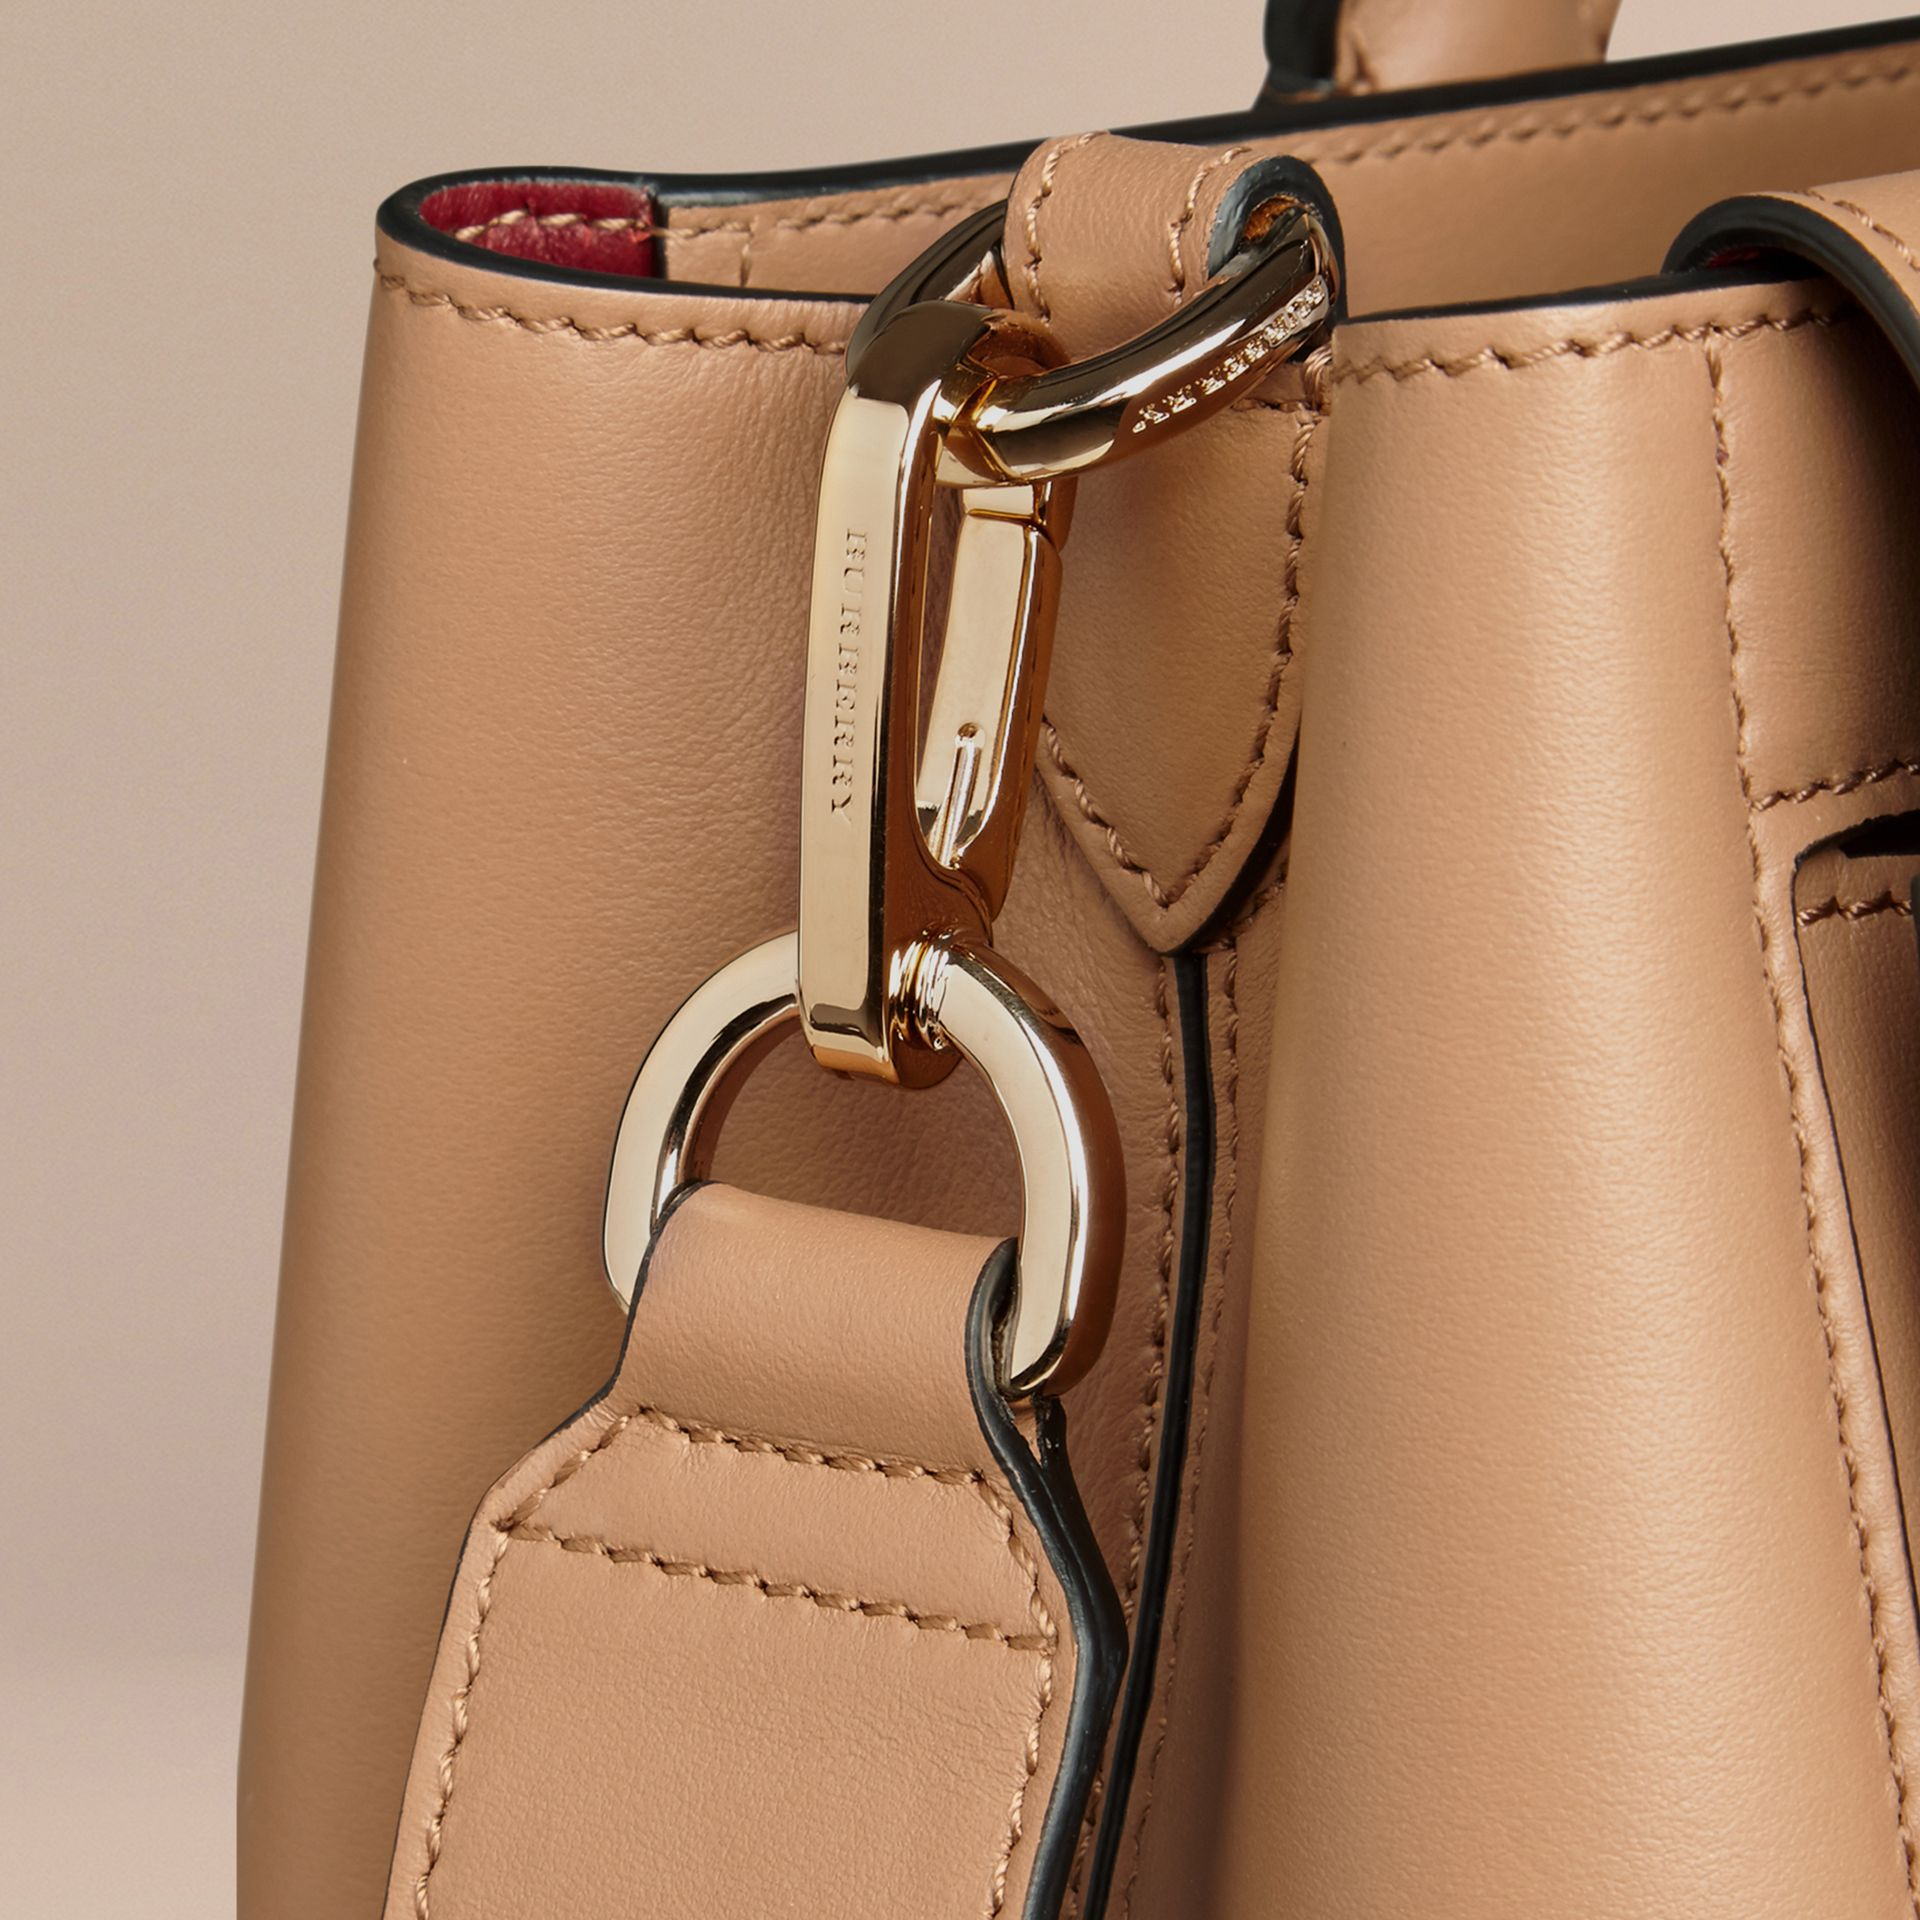 Camel The Medium Saddle Bag in Smooth Bonded Leather Camel - gallery image 6